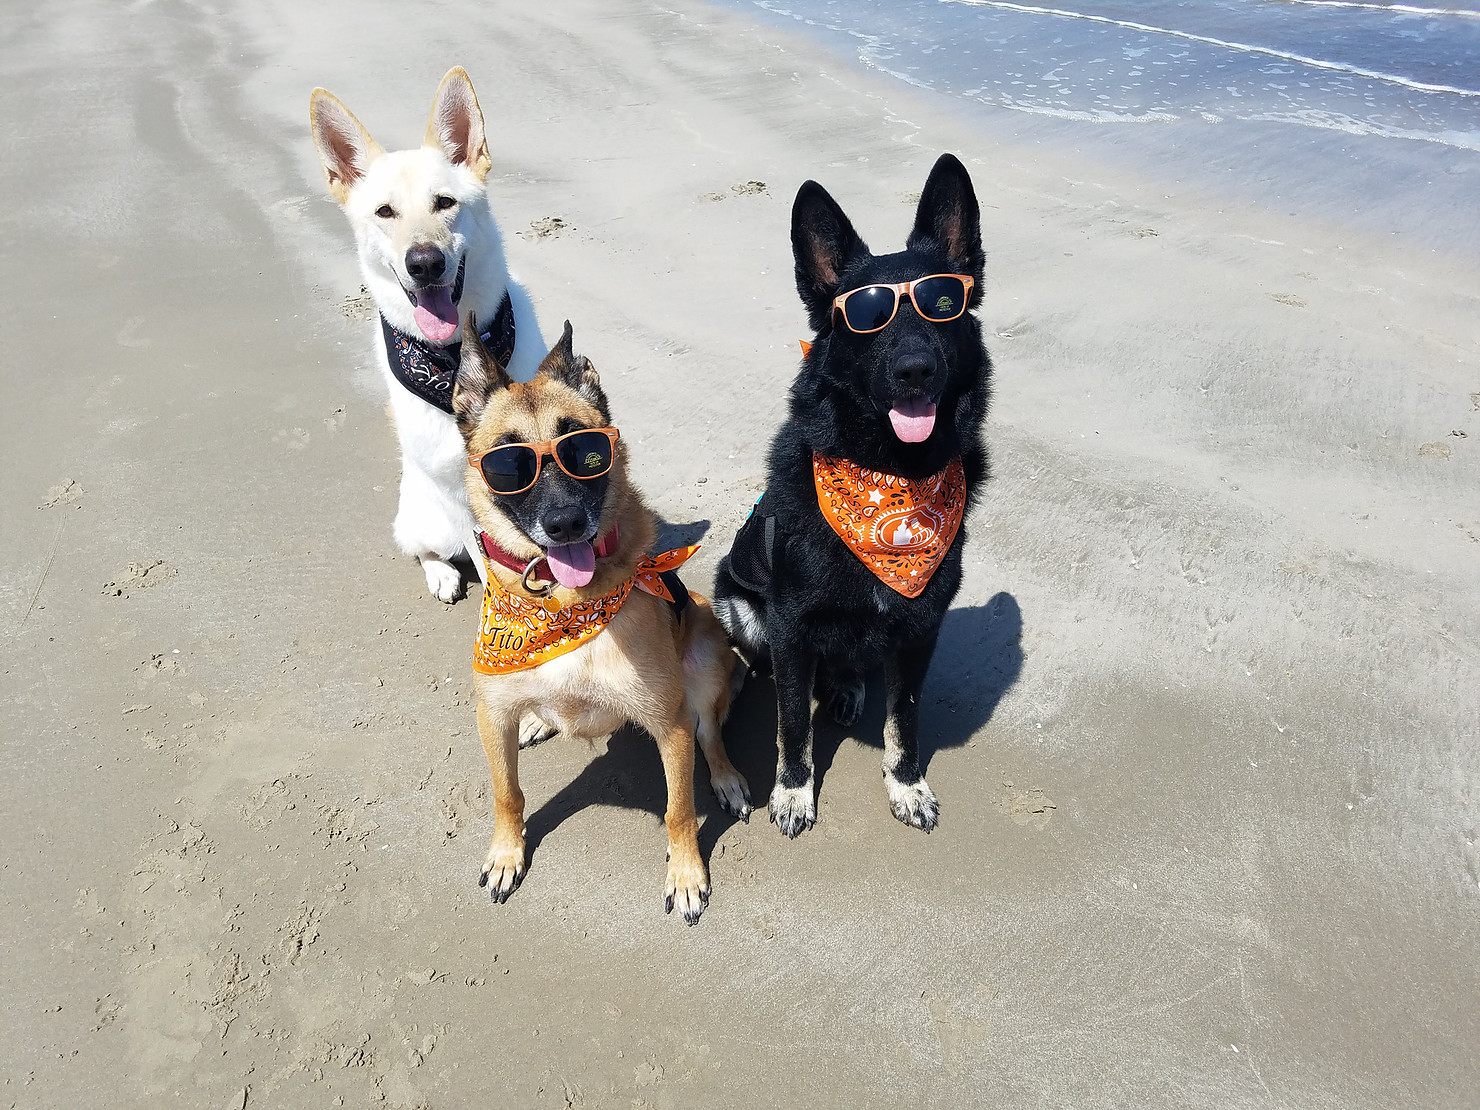 Dasha, Jarvis, and Saul (L-R) are trained sea turtle nest detection dogs. Photo: @K9s4Conservation